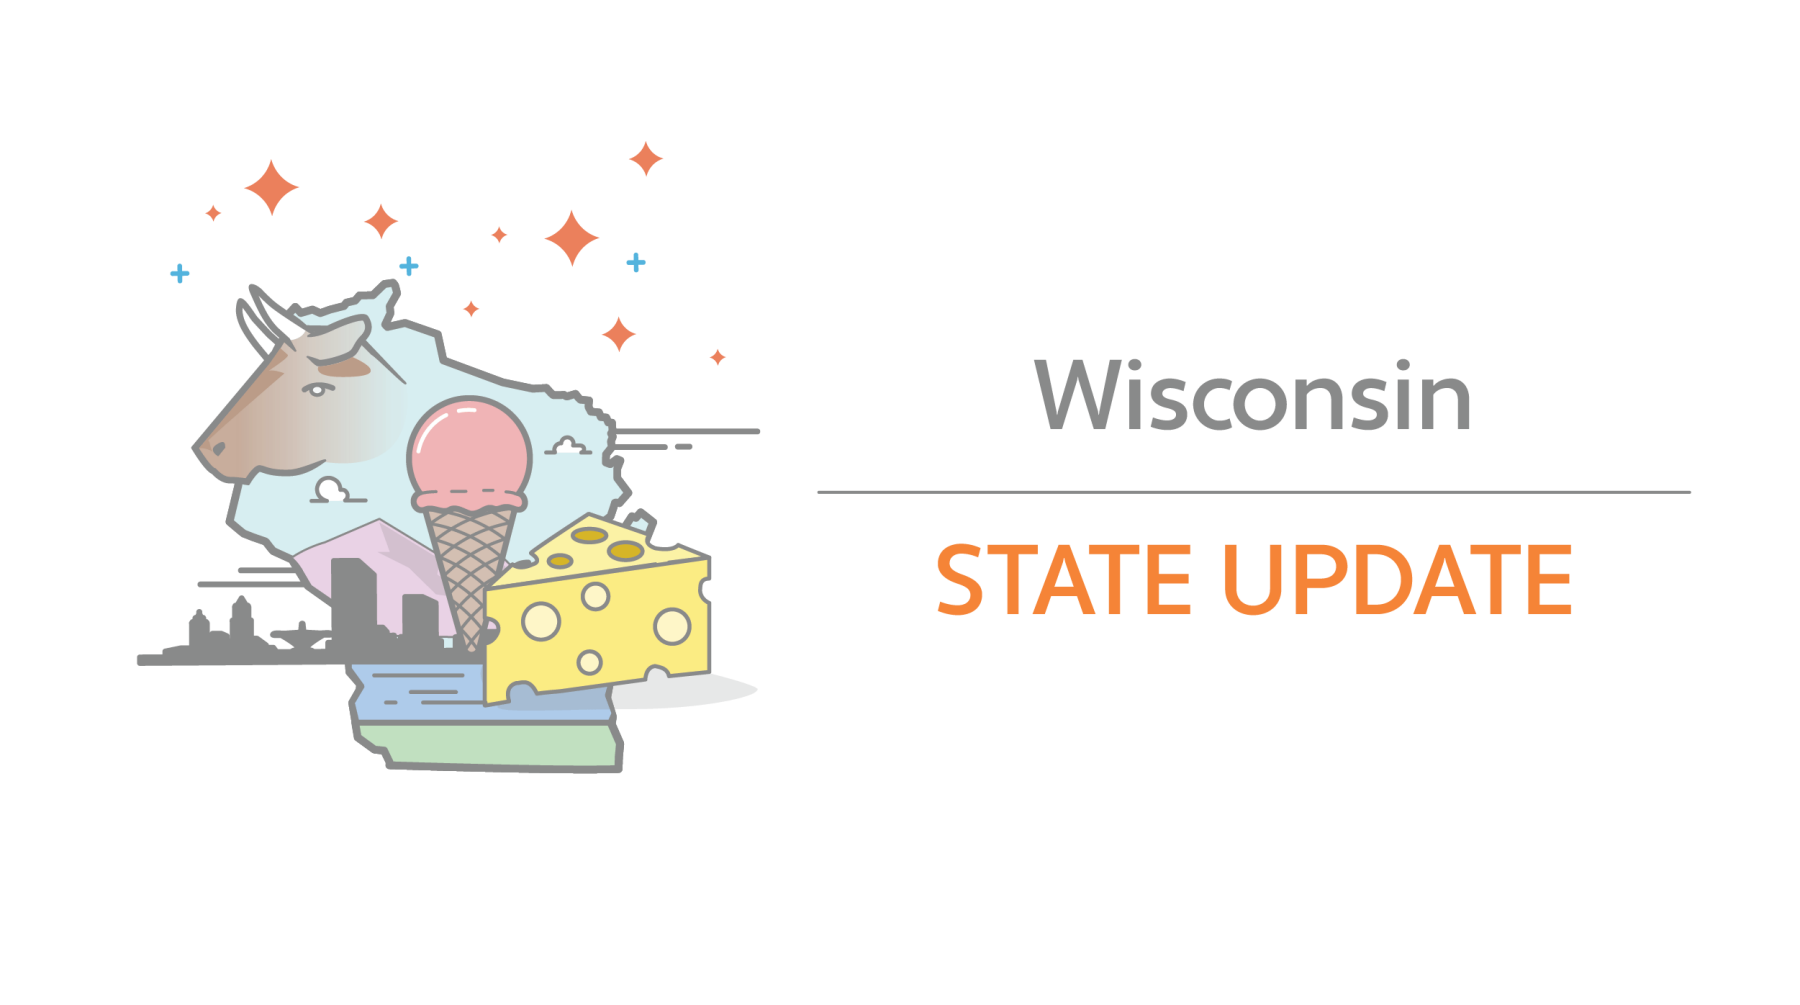 When exactly do marketplace facilitators need to collect Wisconsin sales tax?